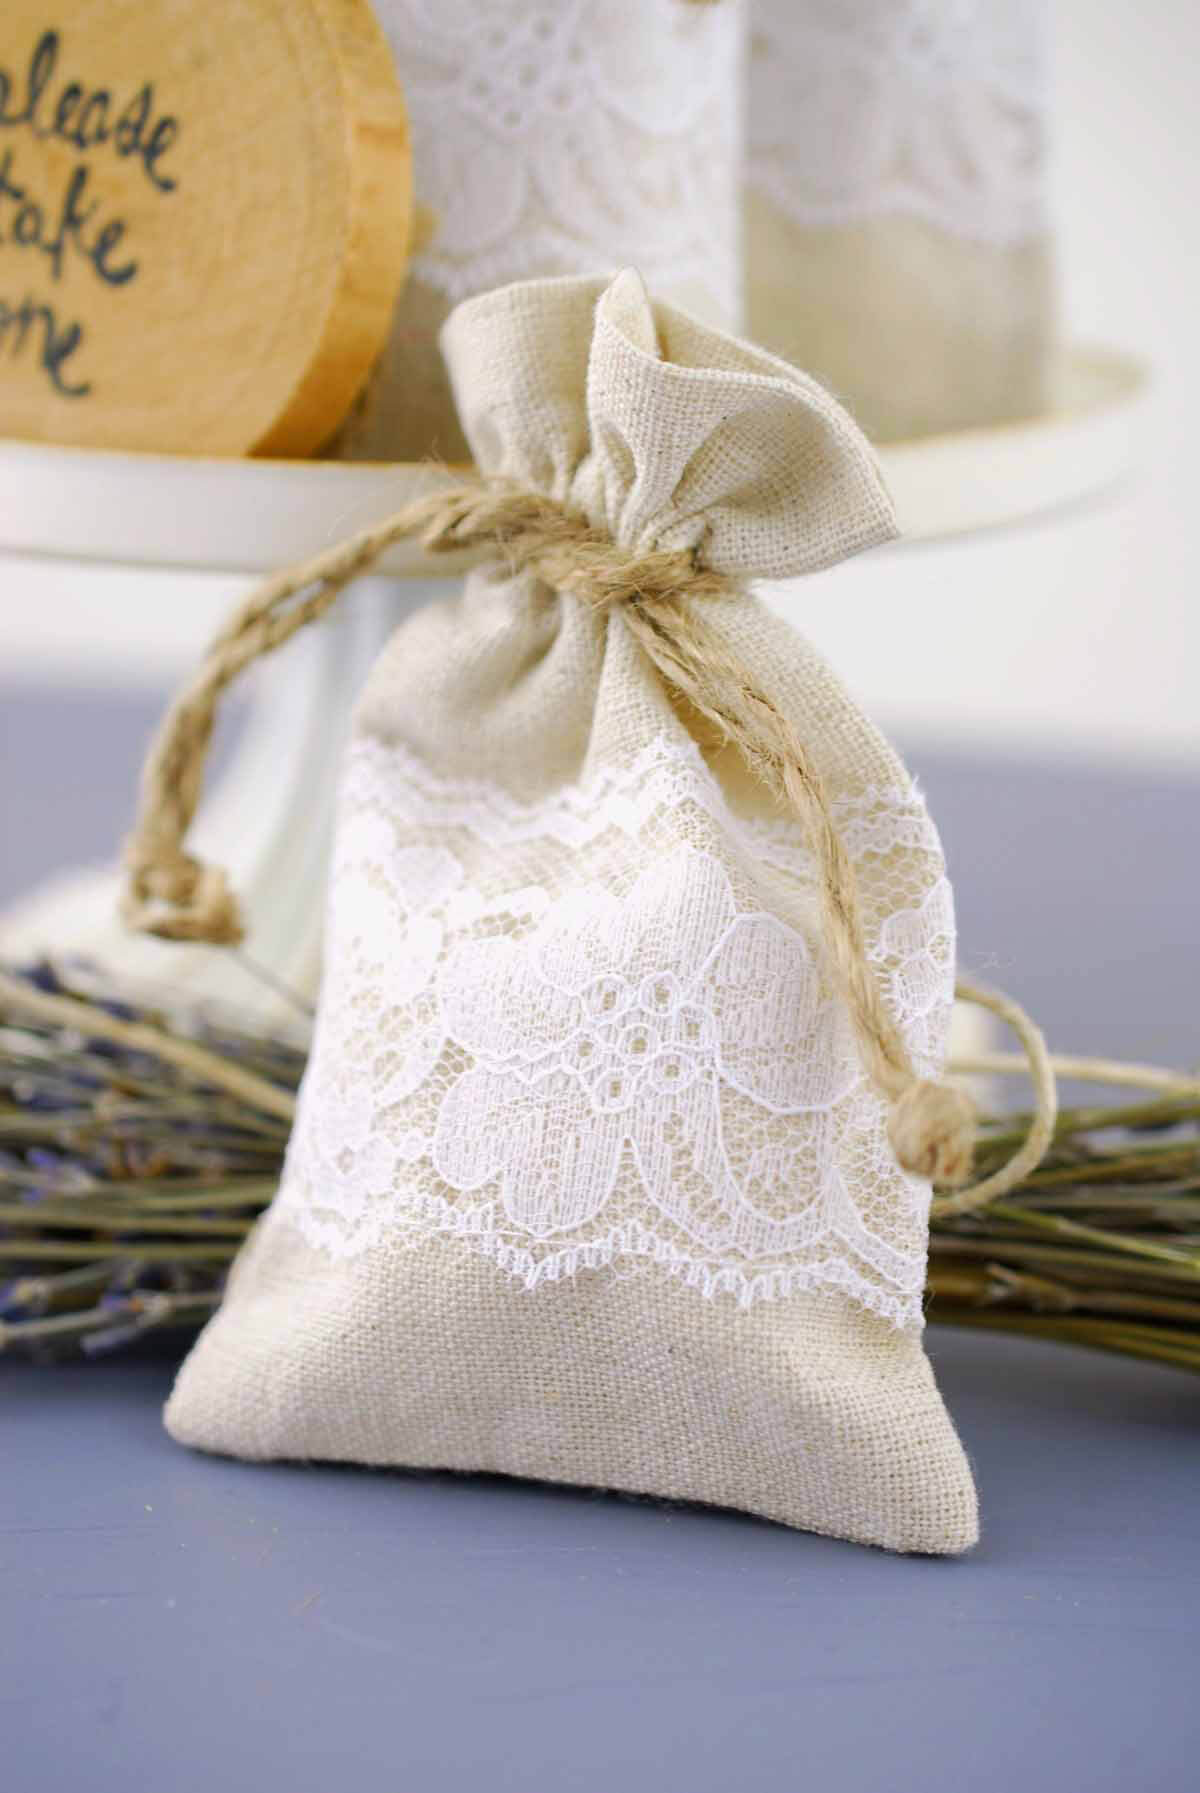 12 linen lace 3x5 wedding favor bags for Wedding favor gift bags